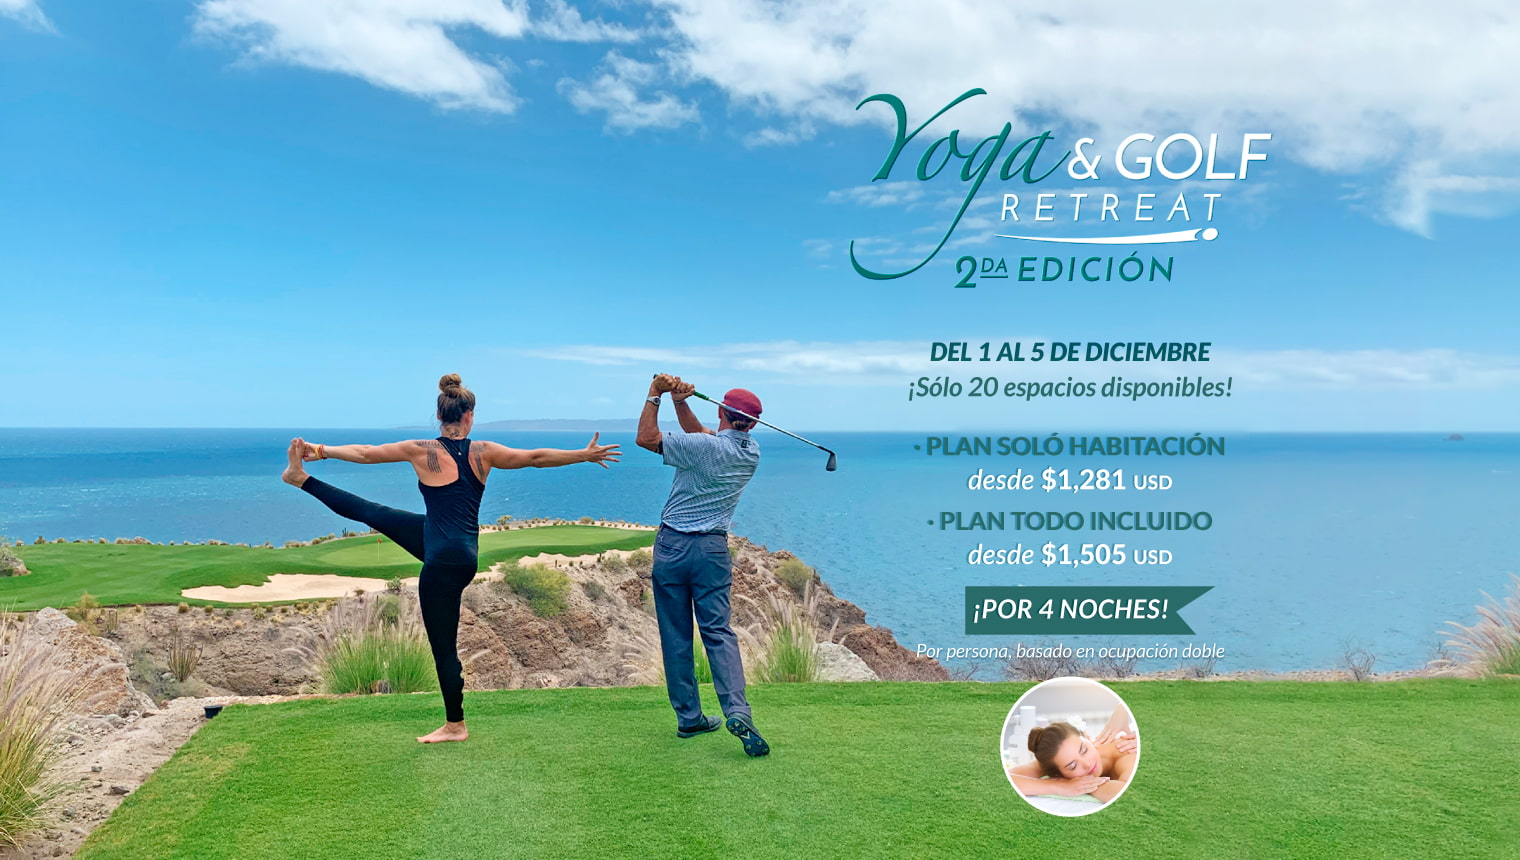 Yoga & Golf Retreat - Segunda Edición